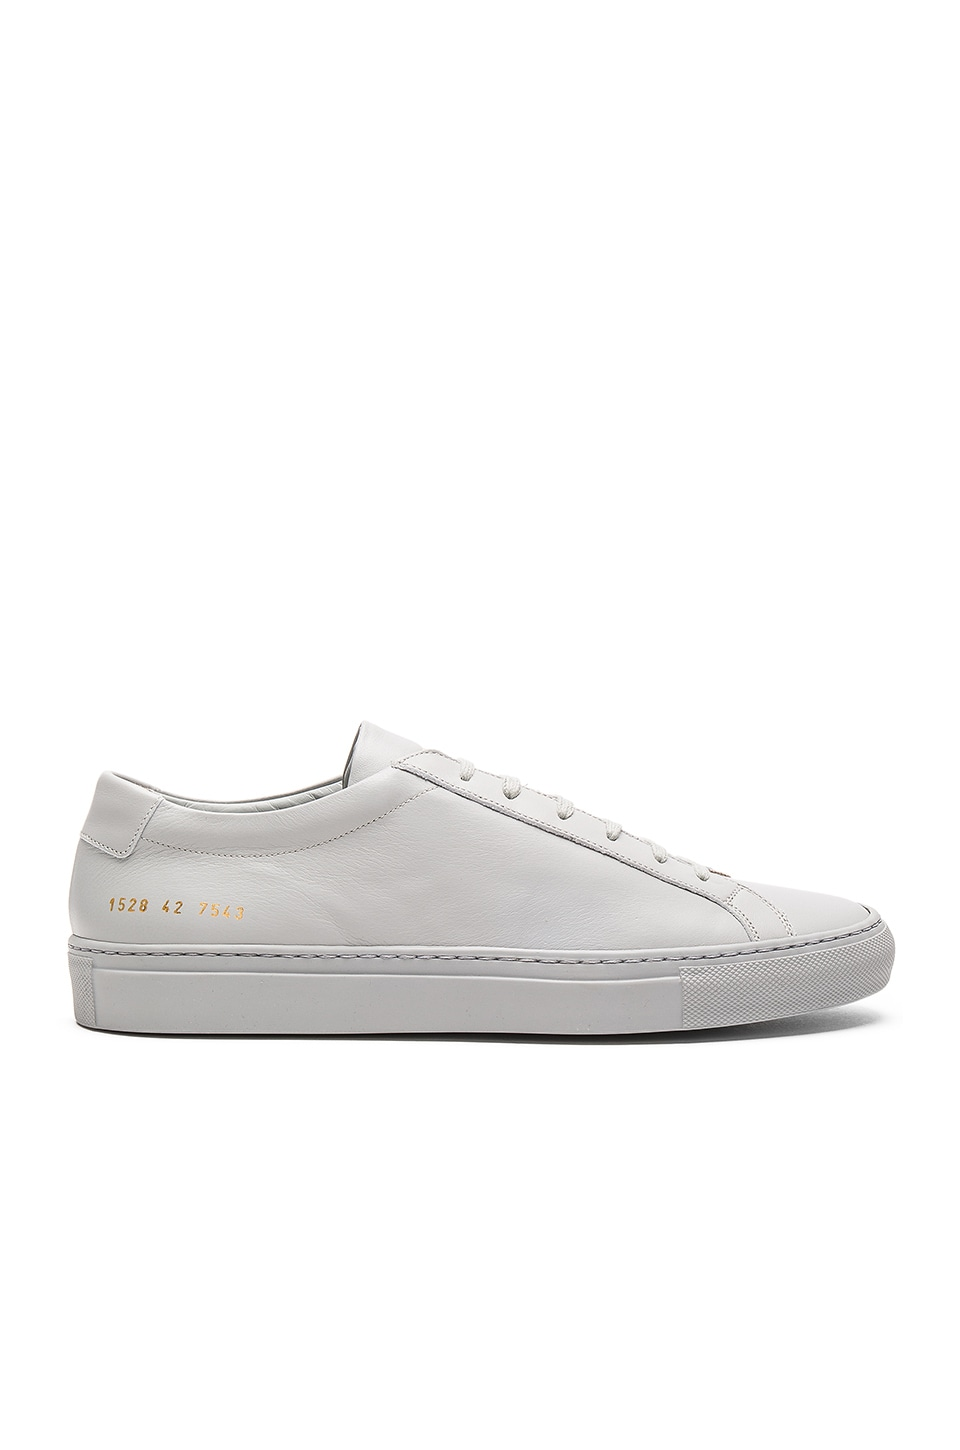 Common Projects Original Achilles Low in Grey